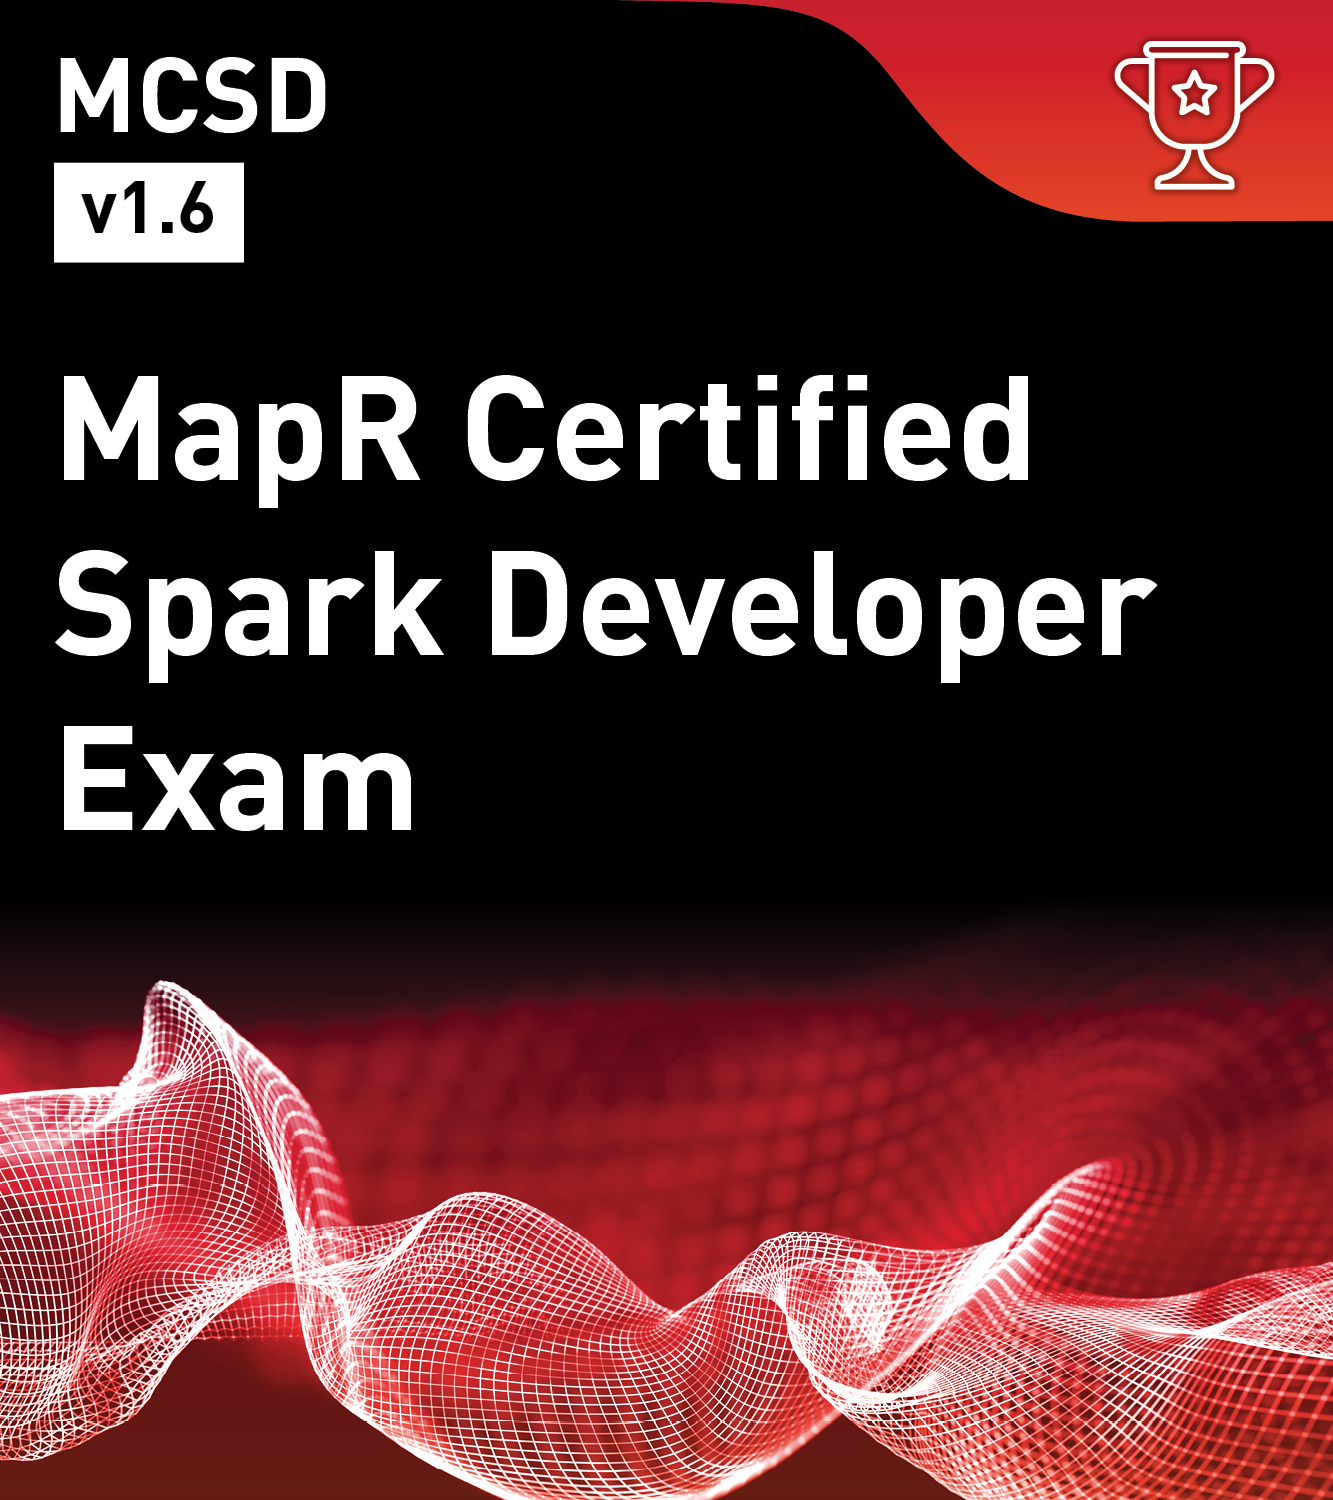 MapR Certified Spark Developer 1.6 (MCSD)